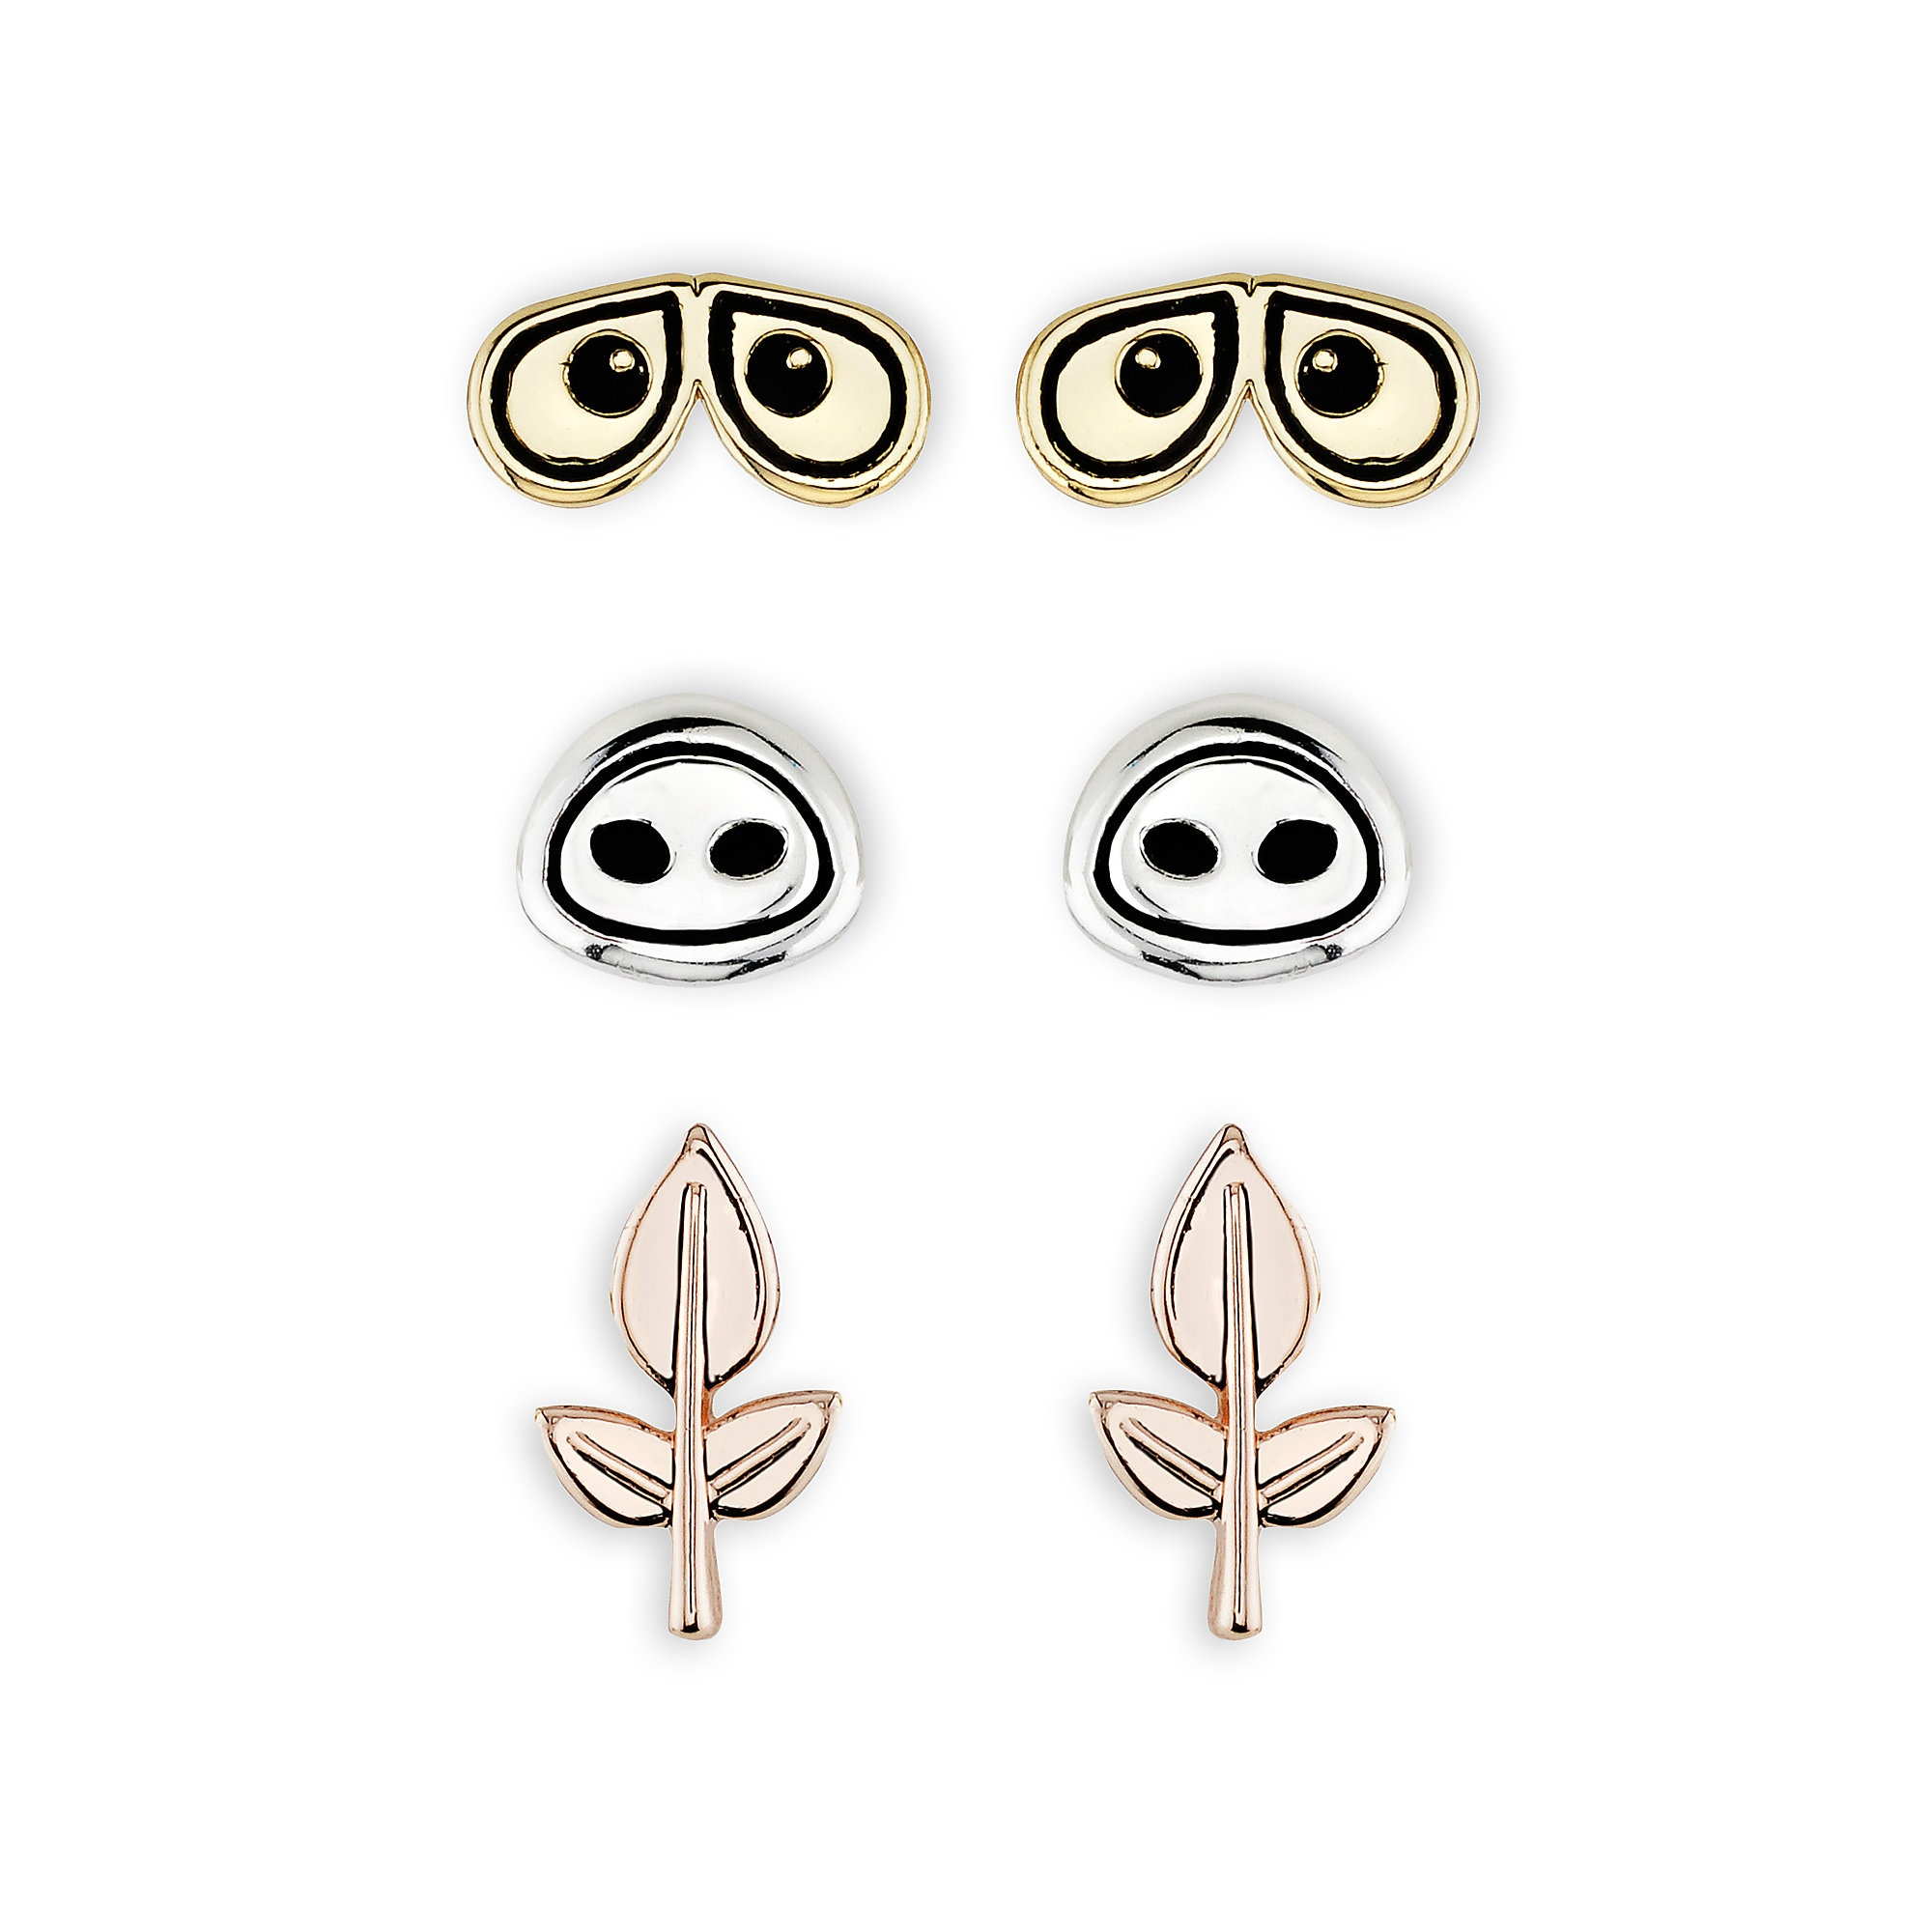 WALL•E and EVE Earring Set